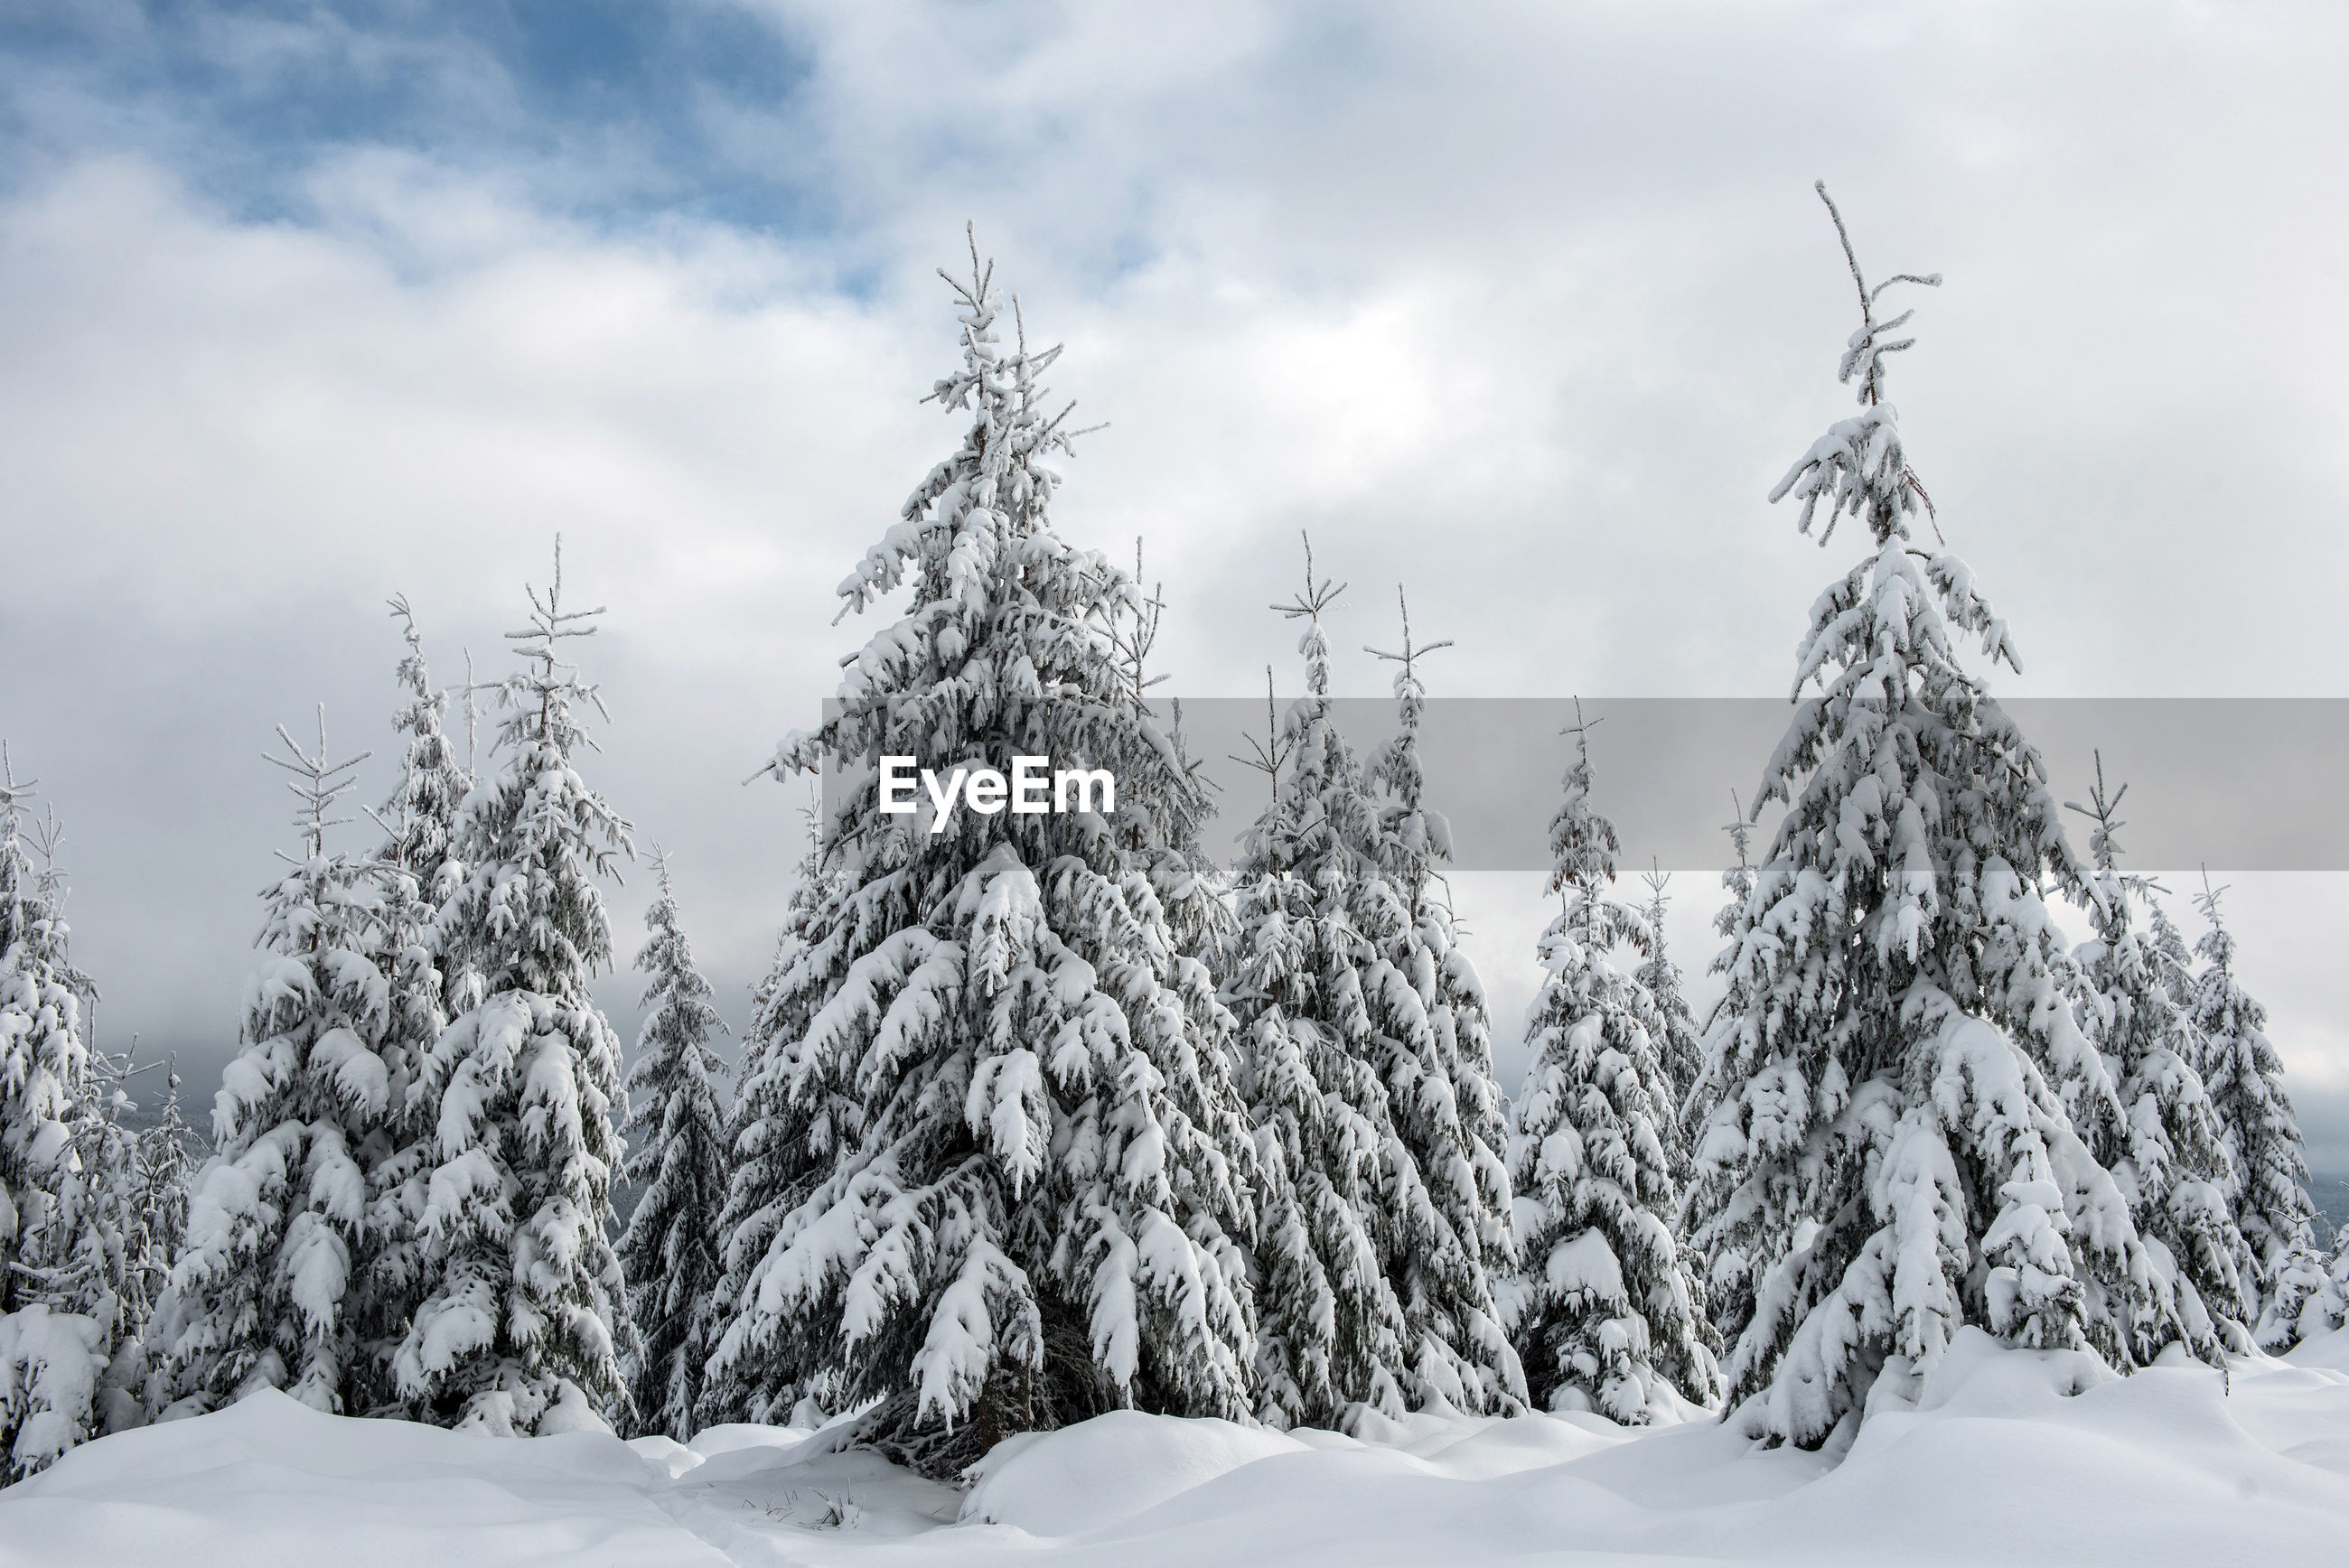 Scenic view of snowcapped trees against sky